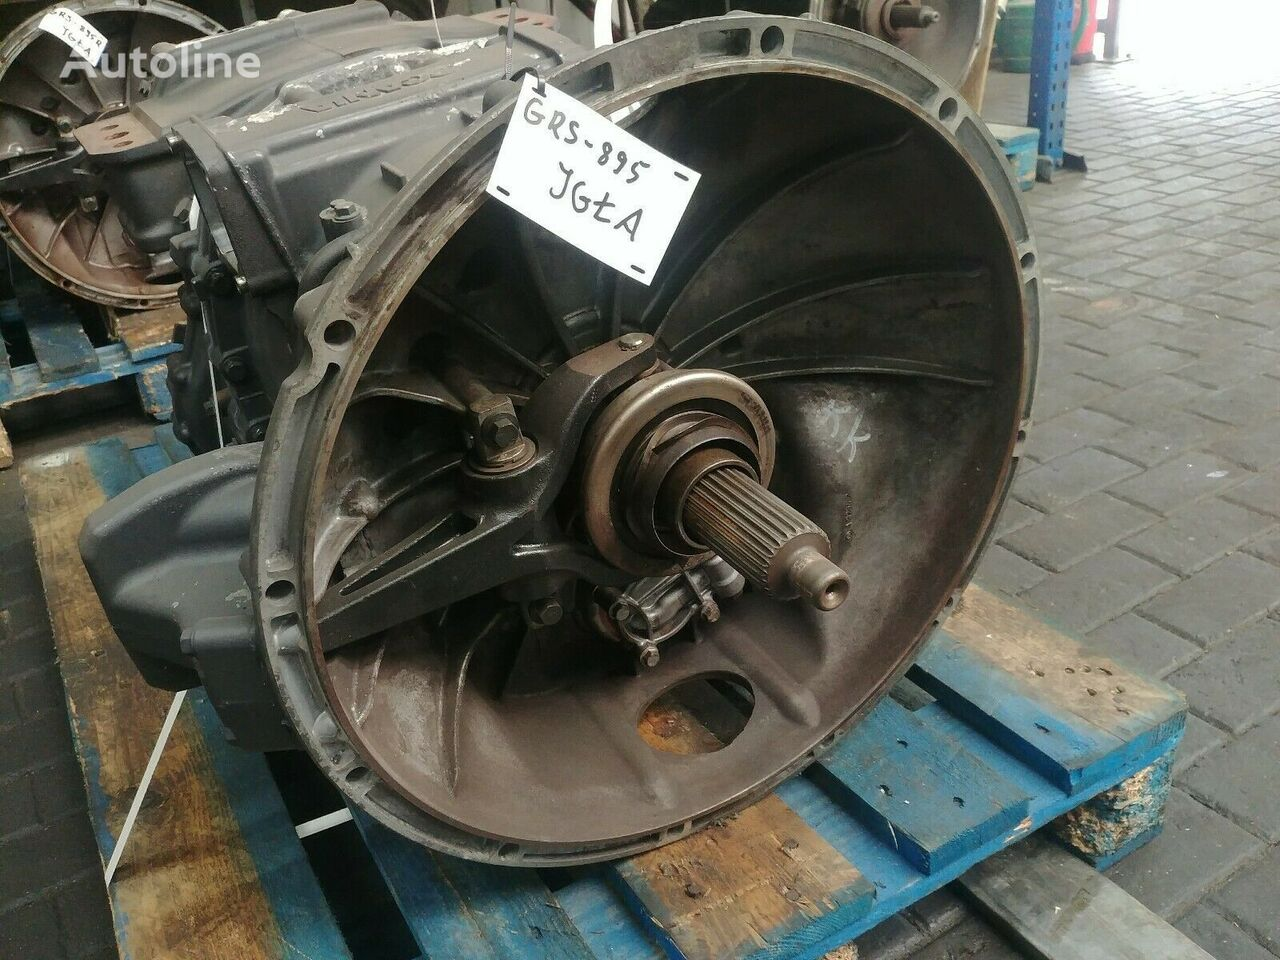 GRS895 MINT CONDITION gearbox for SCANIA tractor unit